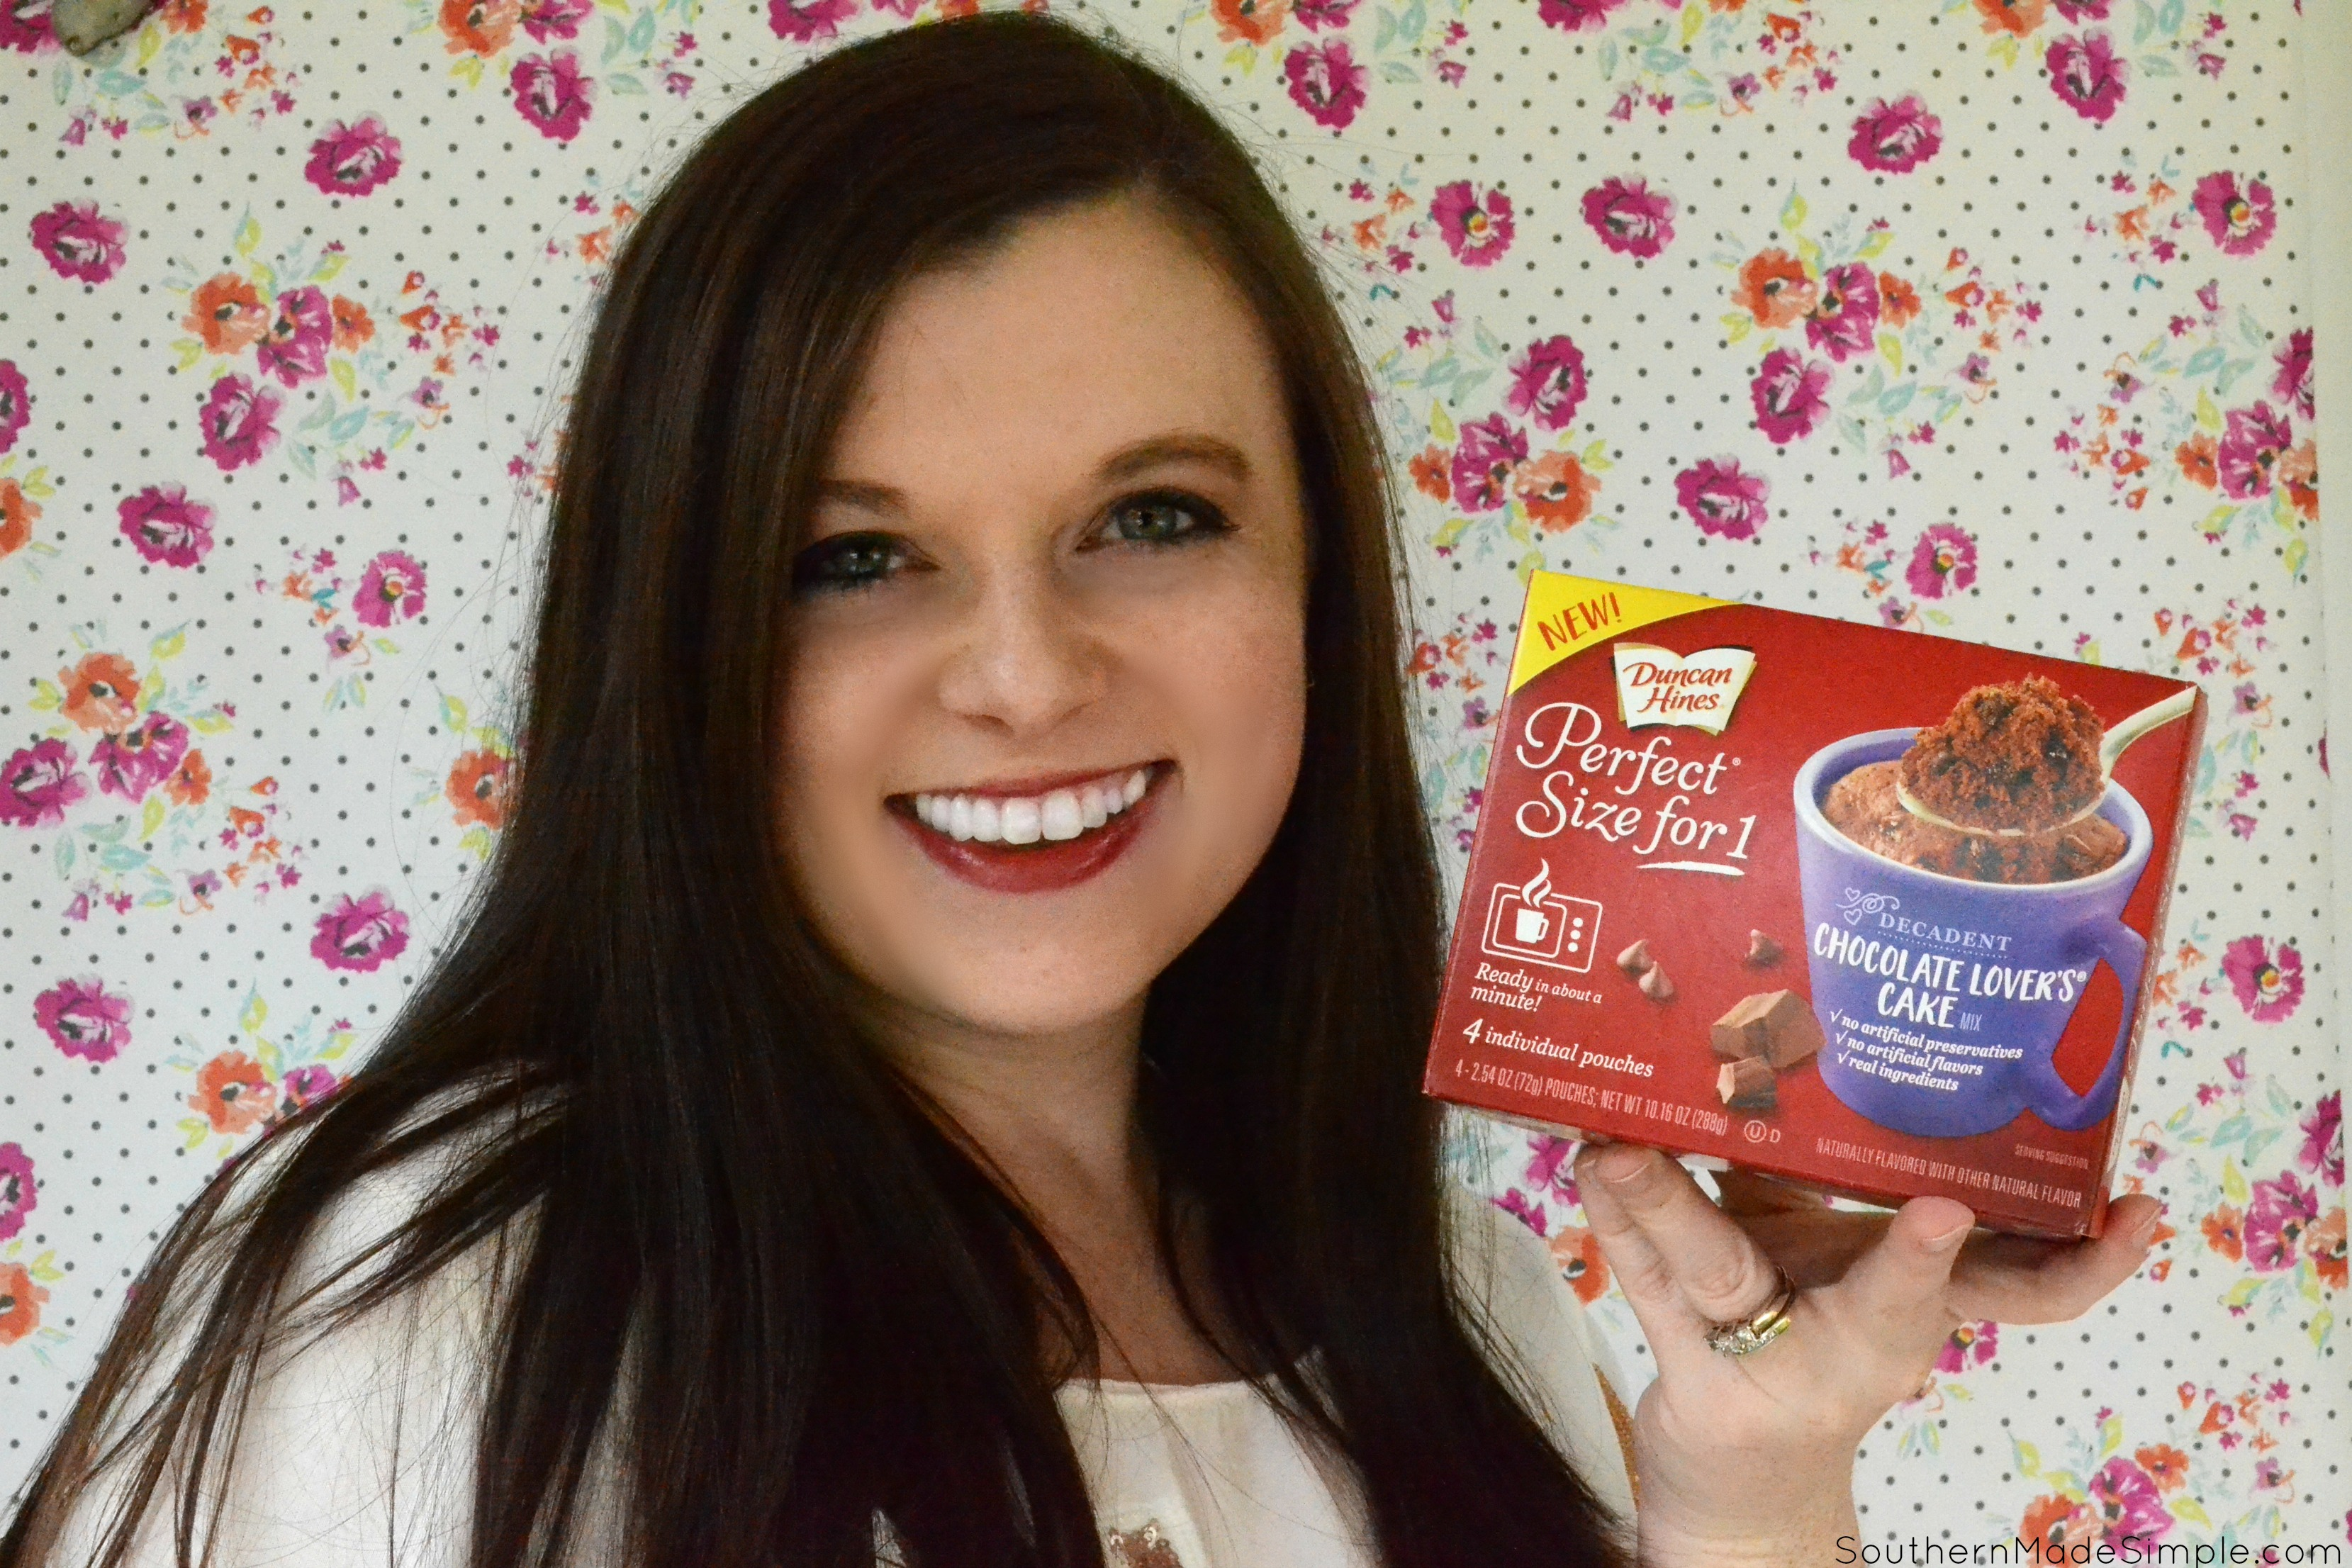 Have you ever wanted a warm, rich and decadent dessert but you only wanted just enough for you? Now you can have your cake and eat it, too, with Duncan Hines Perfect Size for 1. All you need is a mug, some water, and about a minute! #PerfectSizefor1 #ad